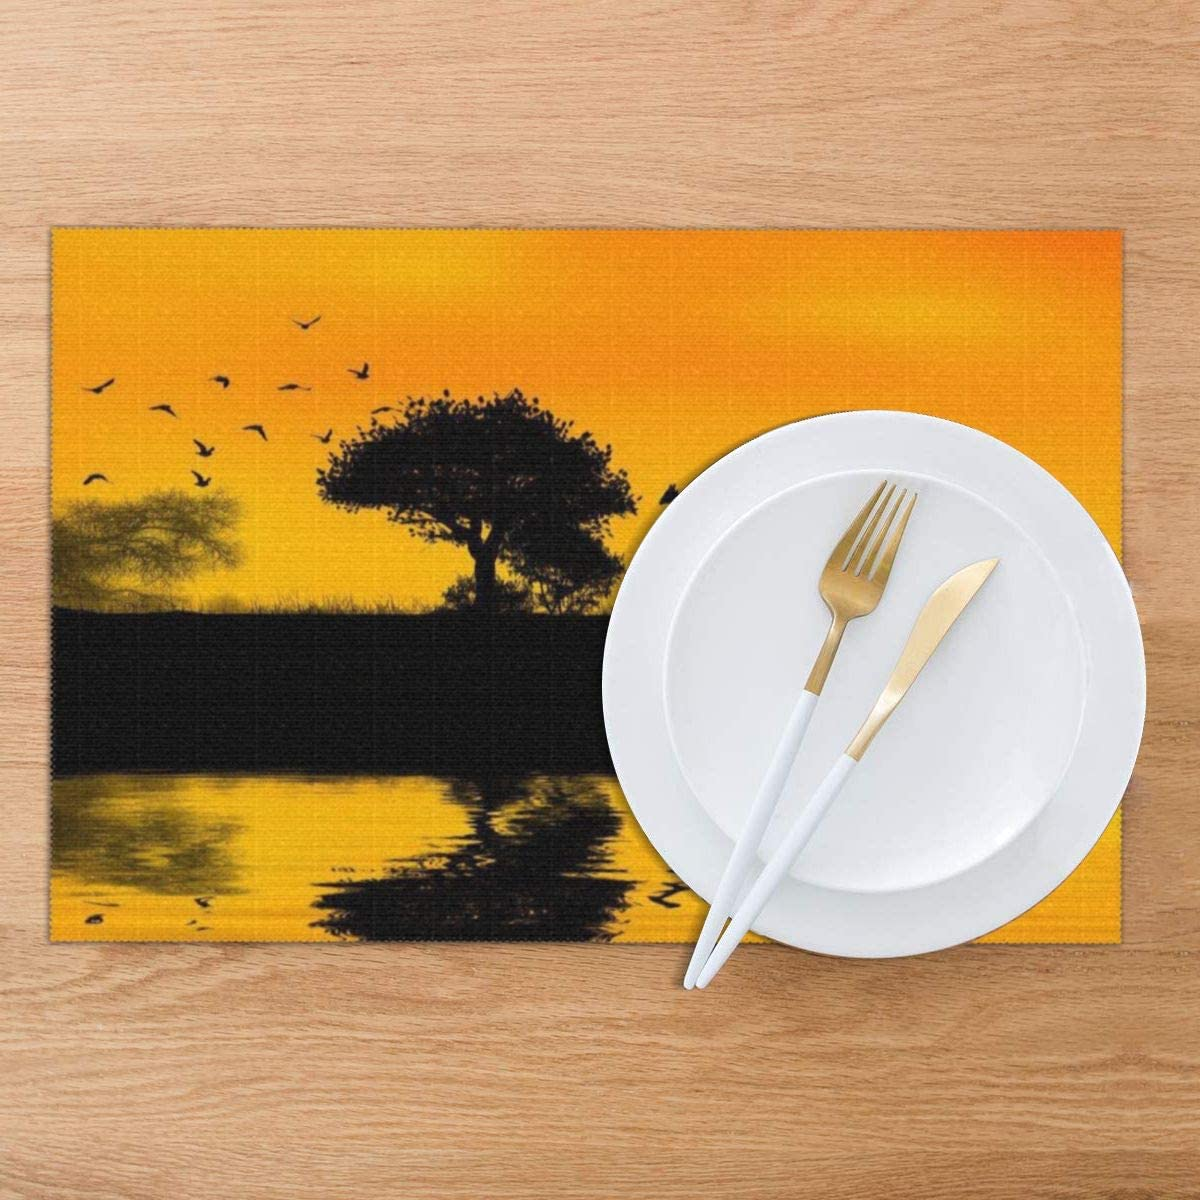 Amazon Com Gao808yuniqi Giraffe By The Lake 3d Printed Tableware Mat Placemats Set Of 6 18 X 12 Snack Placemats Beverage Placemats Party Placemats For Dining Table Kitchen Drink Placemat Home Kitchen